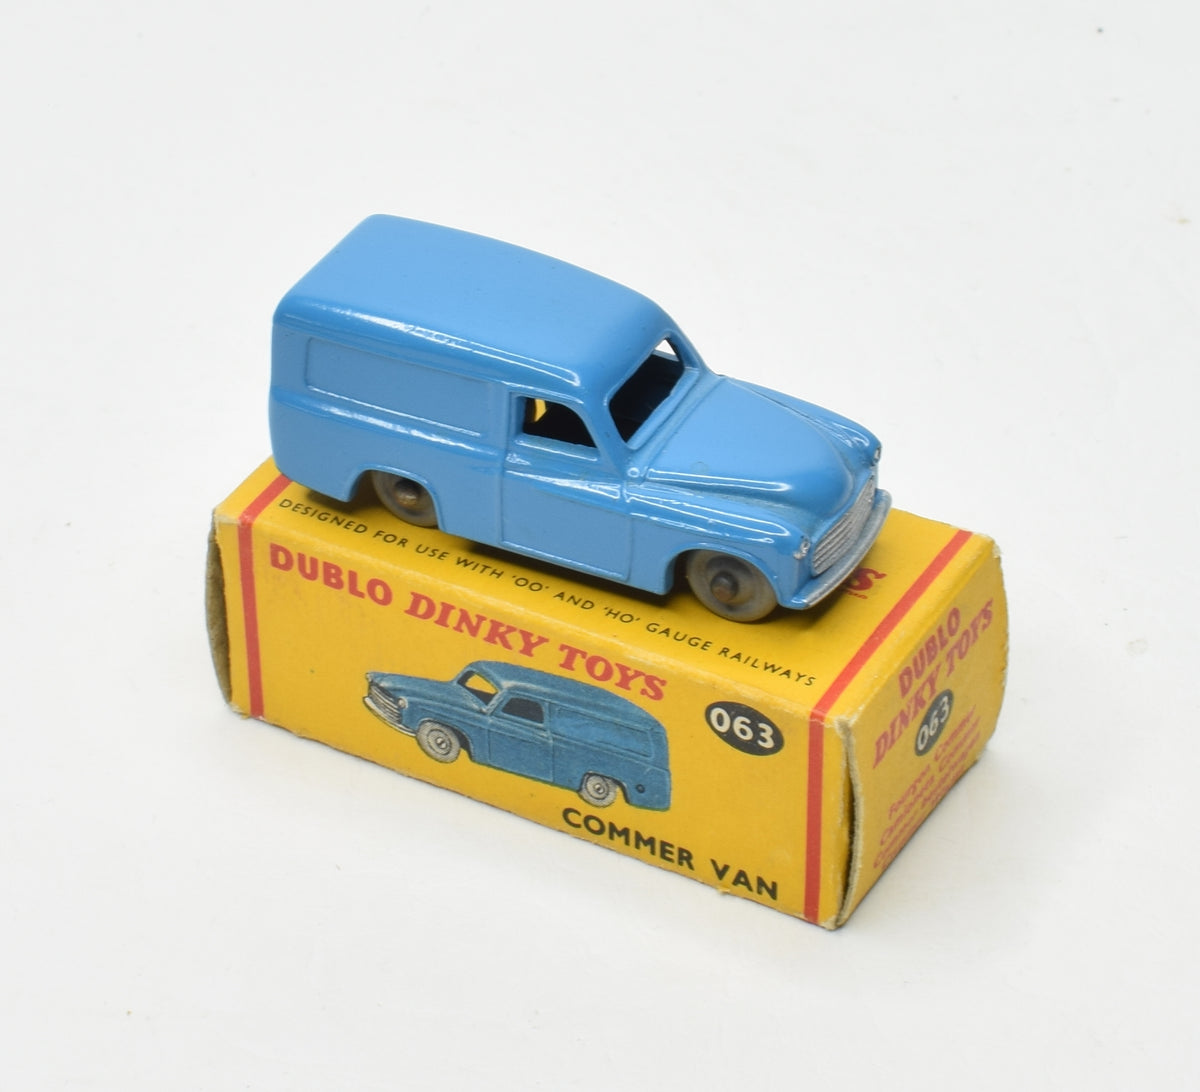 Dublo Dinky toy 063 Commer Van Very Near Mint/Boxed